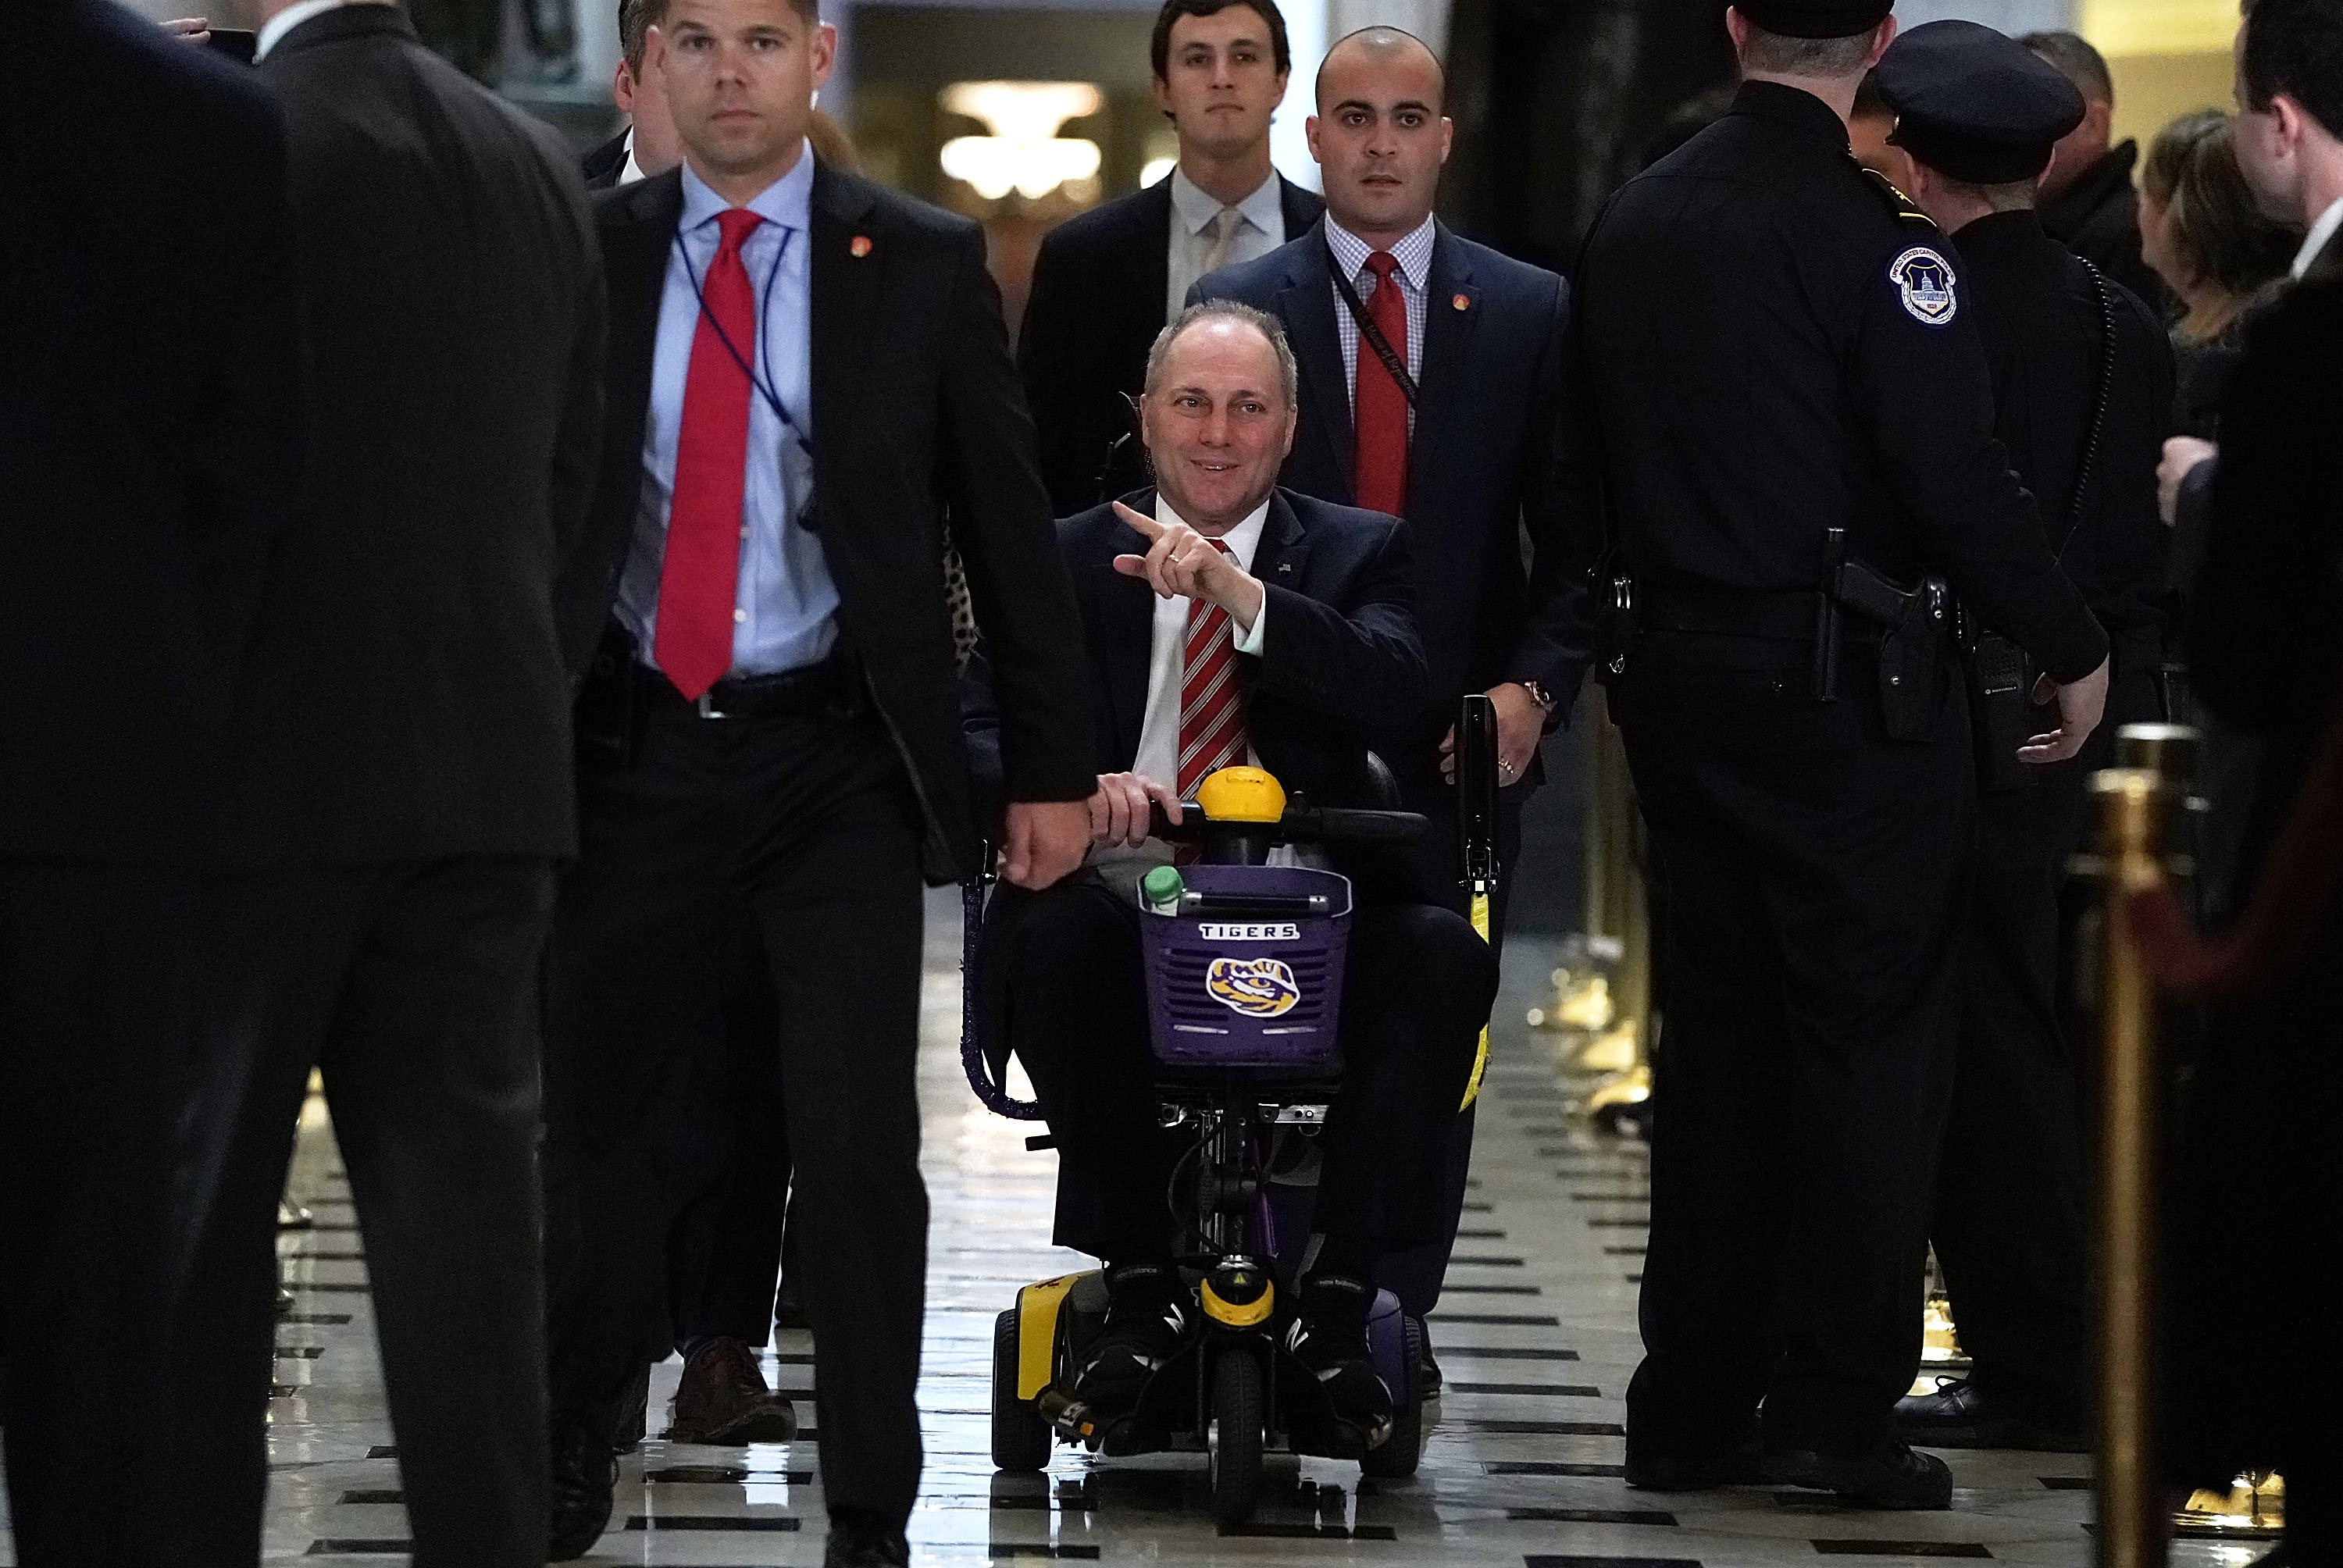 WASHINGTON, DC - DECEMBER 19: U.S. House Majority Whip Rep. Steve Scalise (R-LA) (C) heads towards the House chamber to vote on the tax overhaul bill December 19, 2017 at the Capitol in Washington, DC. The House has passed the tax overhaul bill and the Senate is expected to vote on the bill soon. (Photo by Alex Wong/Getty Images)